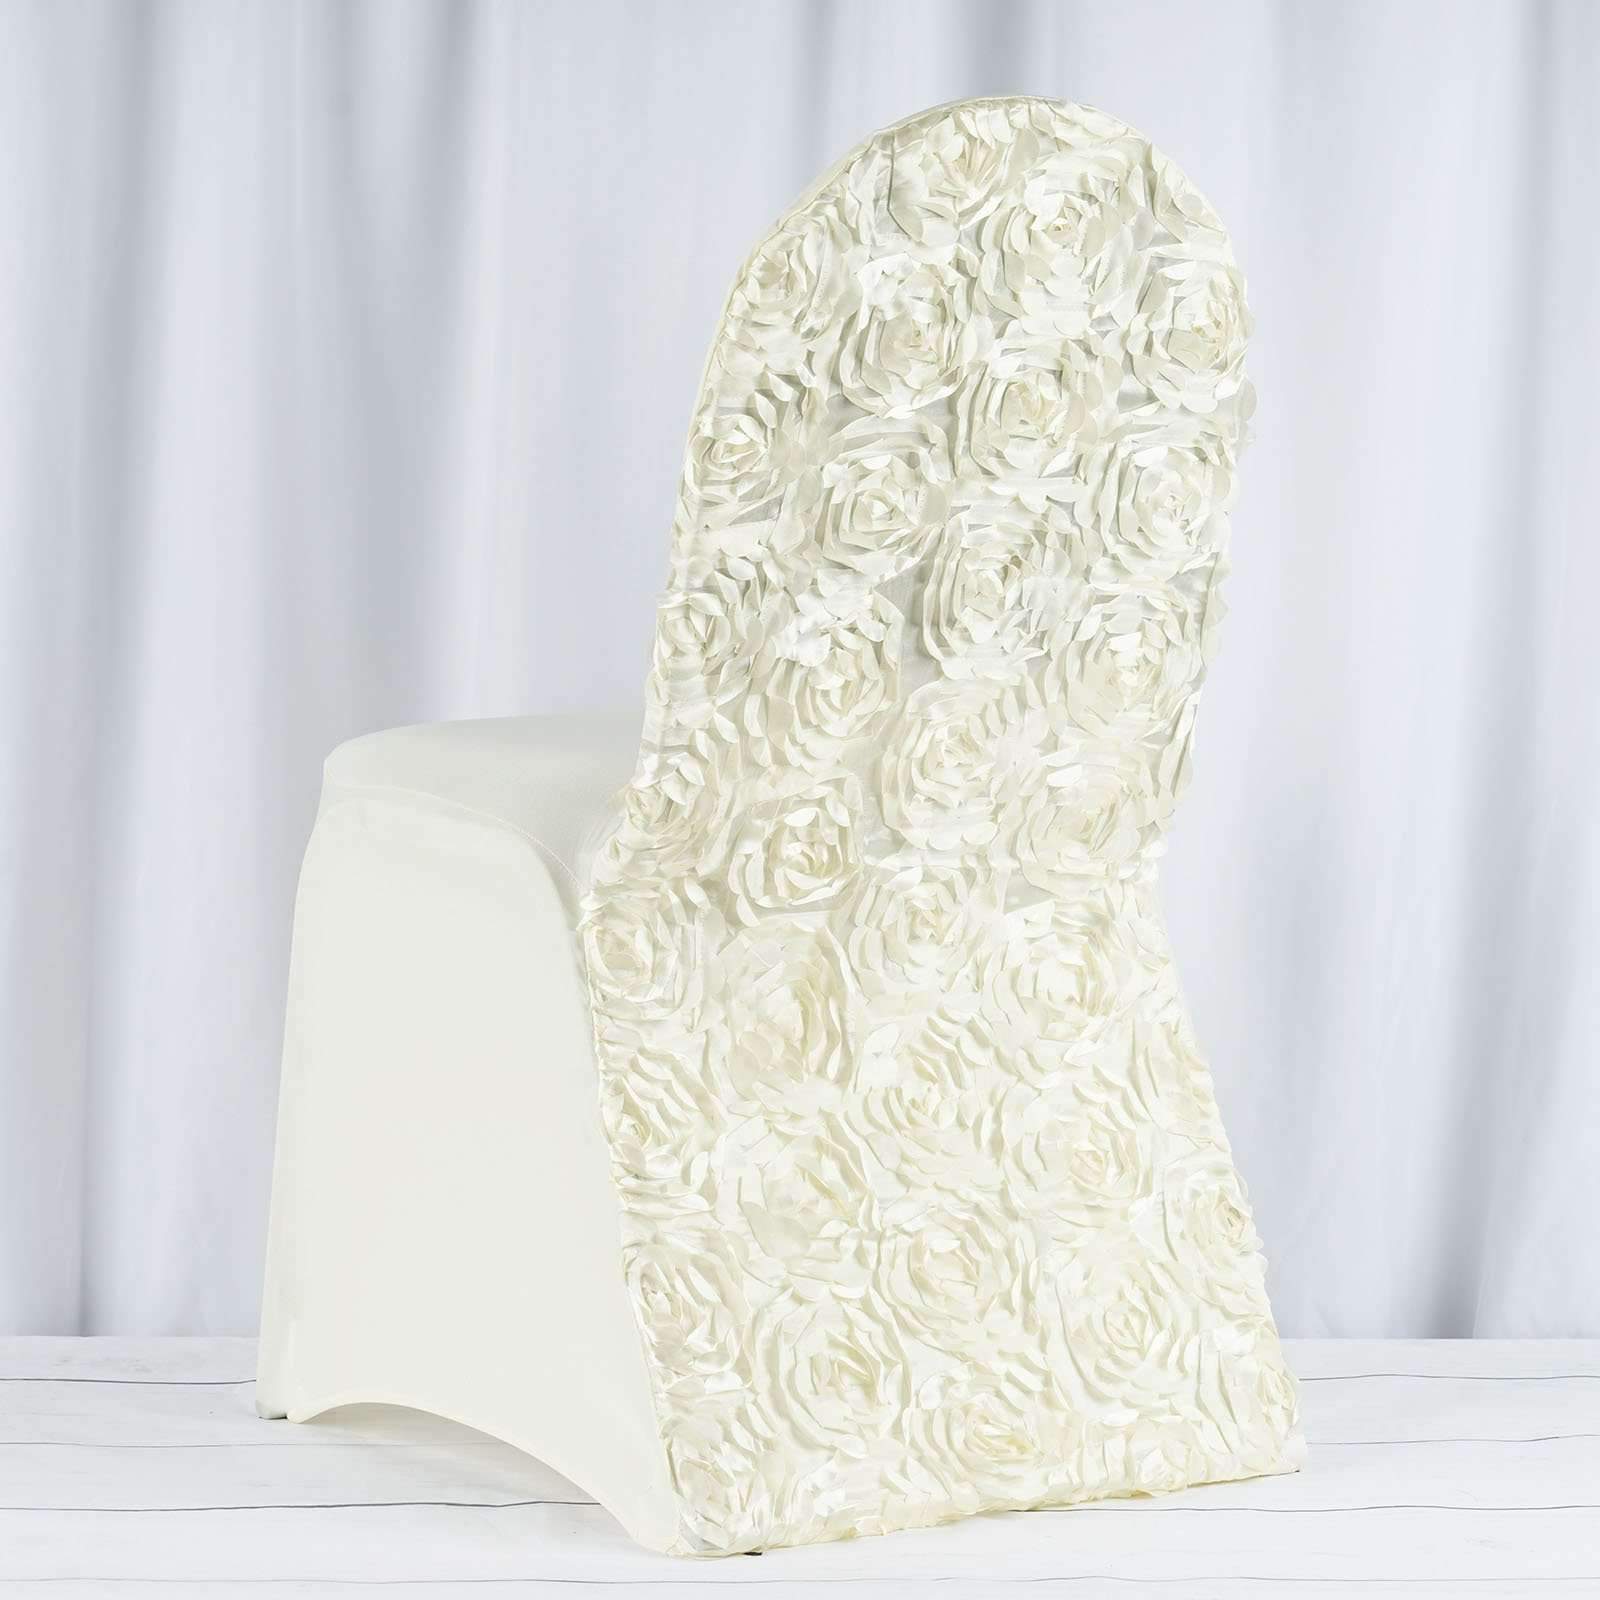 Admirable Satin Rosette Ivory Stretch Banquet Spandex Chair Cover Chaircoverfactory Machost Co Dining Chair Design Ideas Machostcouk